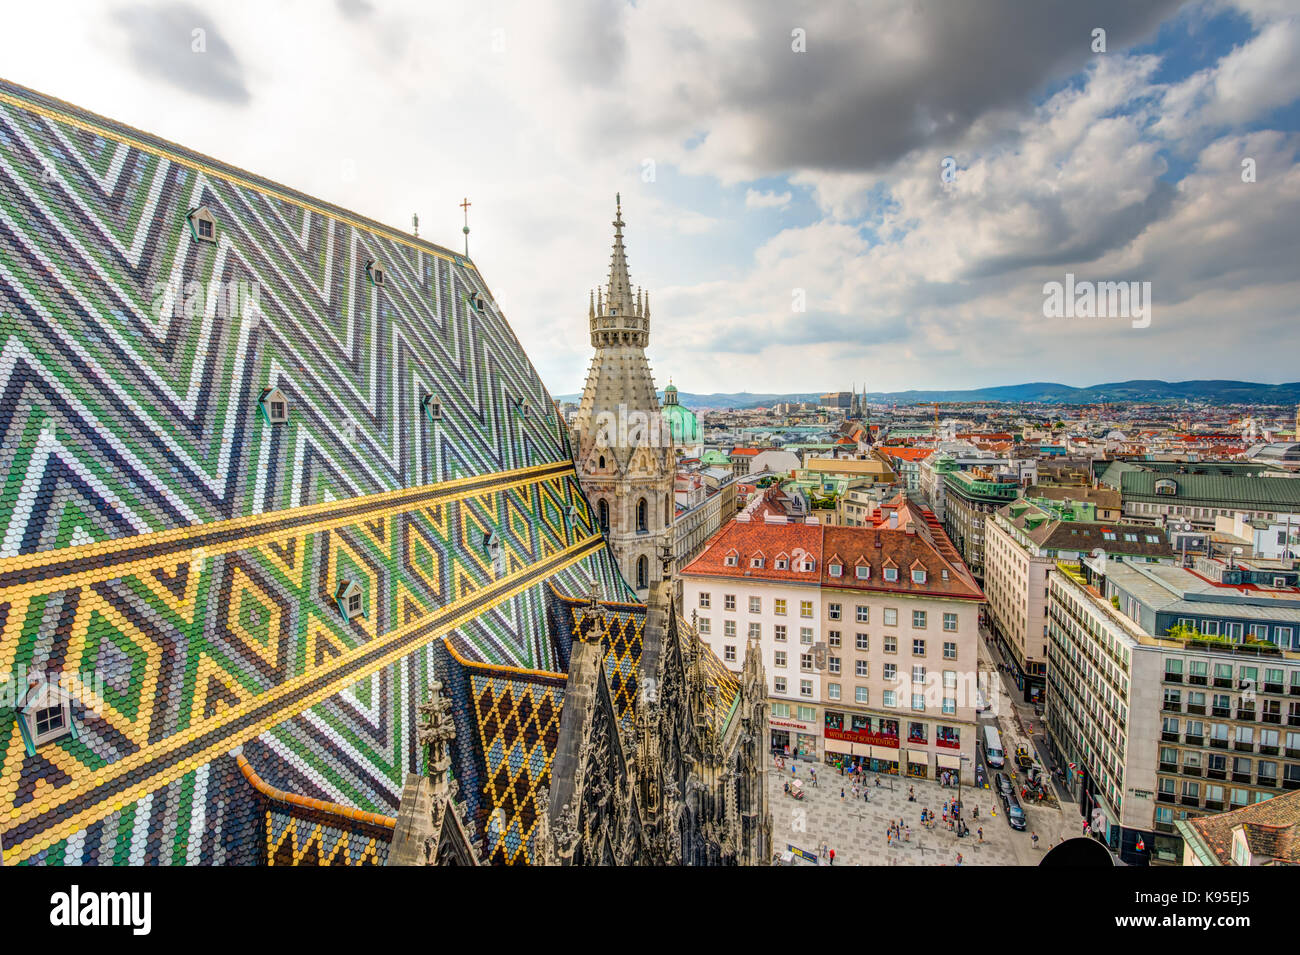 VIENNA, AUSTRIA - AUGUST 28:  St. Stephen's cathedral and eerial view over the cityscape of Vienna, Austria - Stock Image